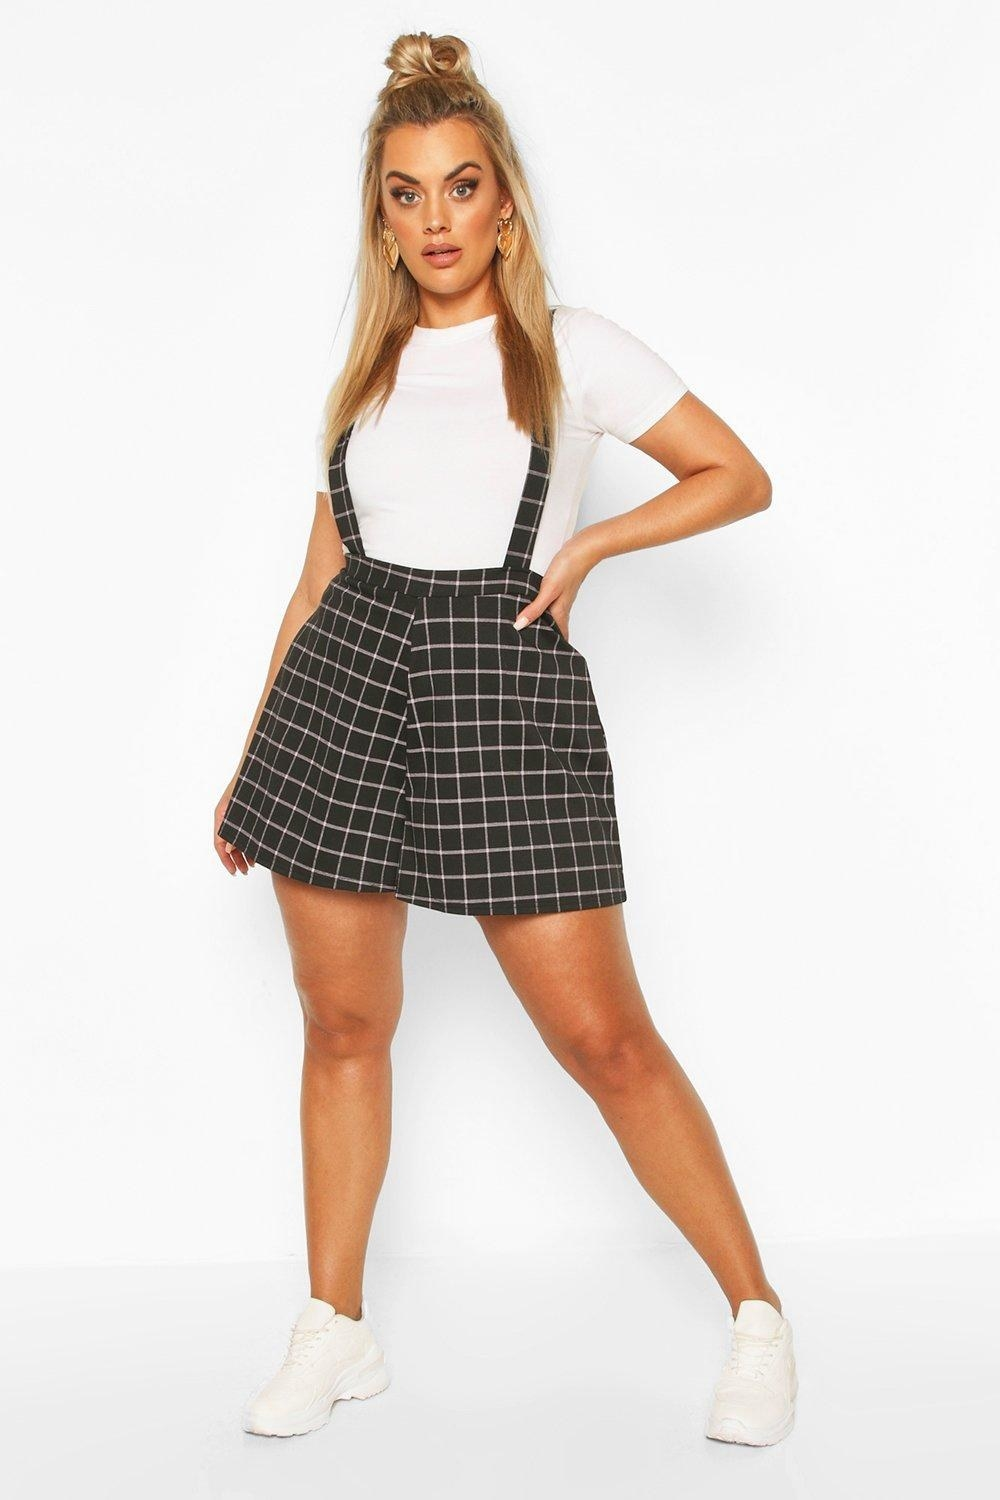 model wearing check print black pinafore shorts with straps that go up on shoulders